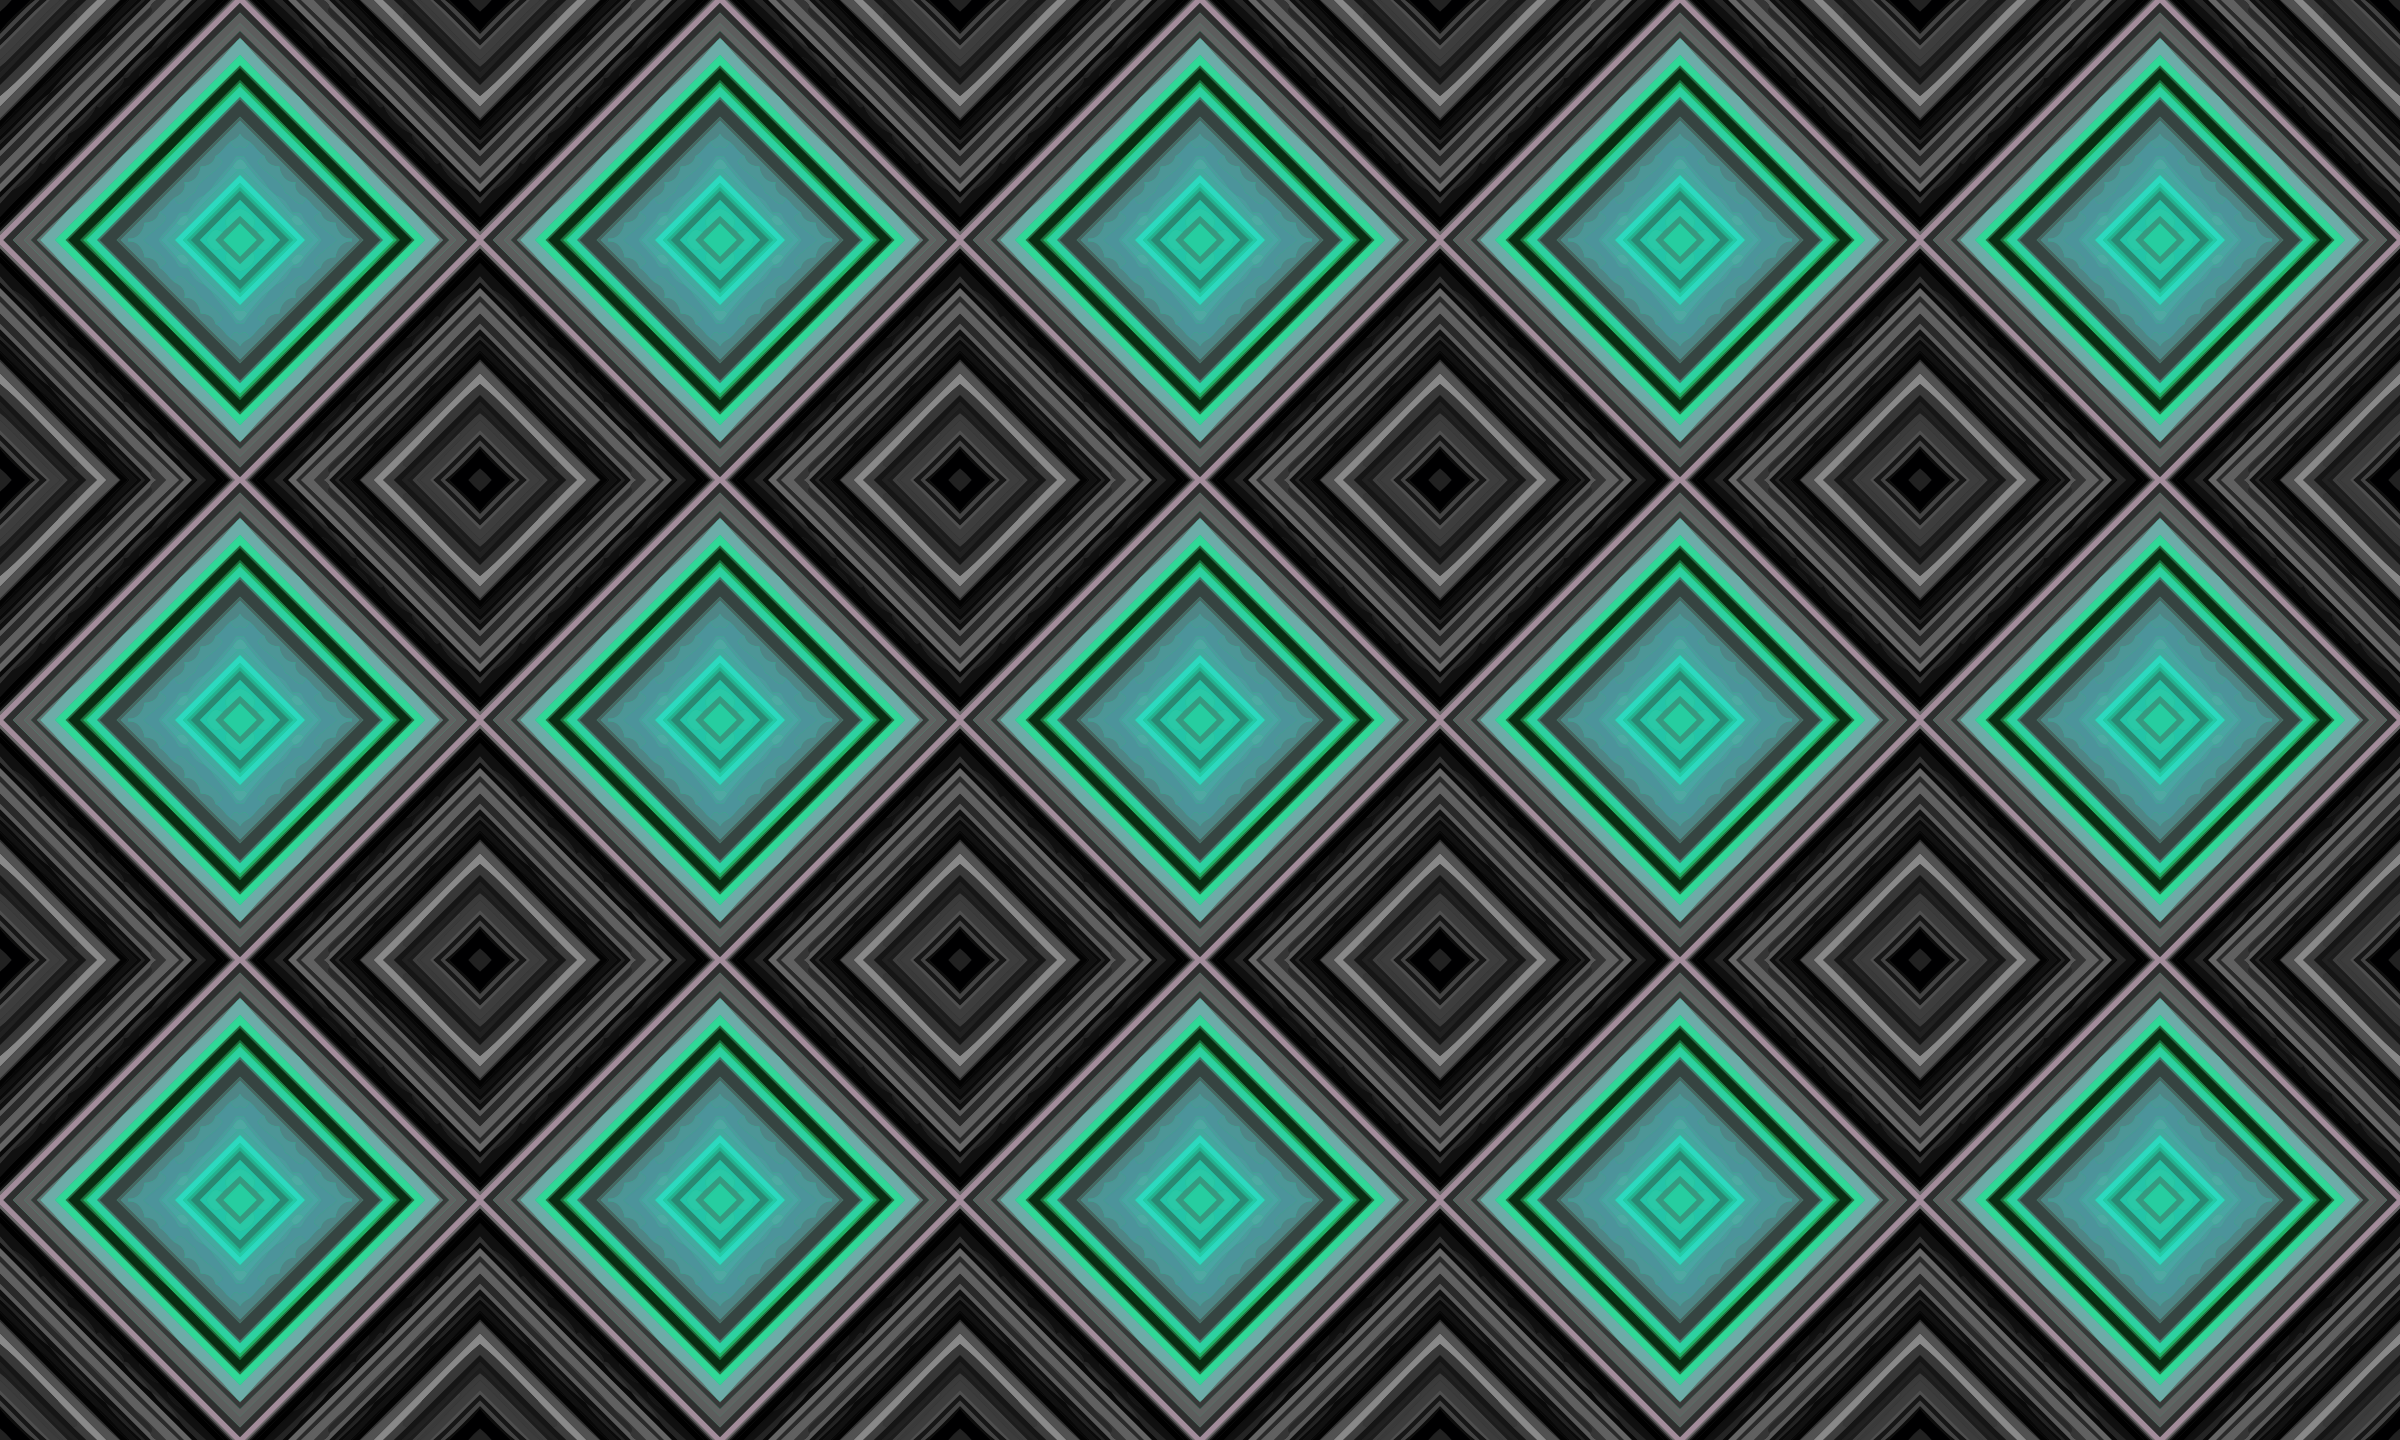 Background pattern 214 (colour 5) by Firkin